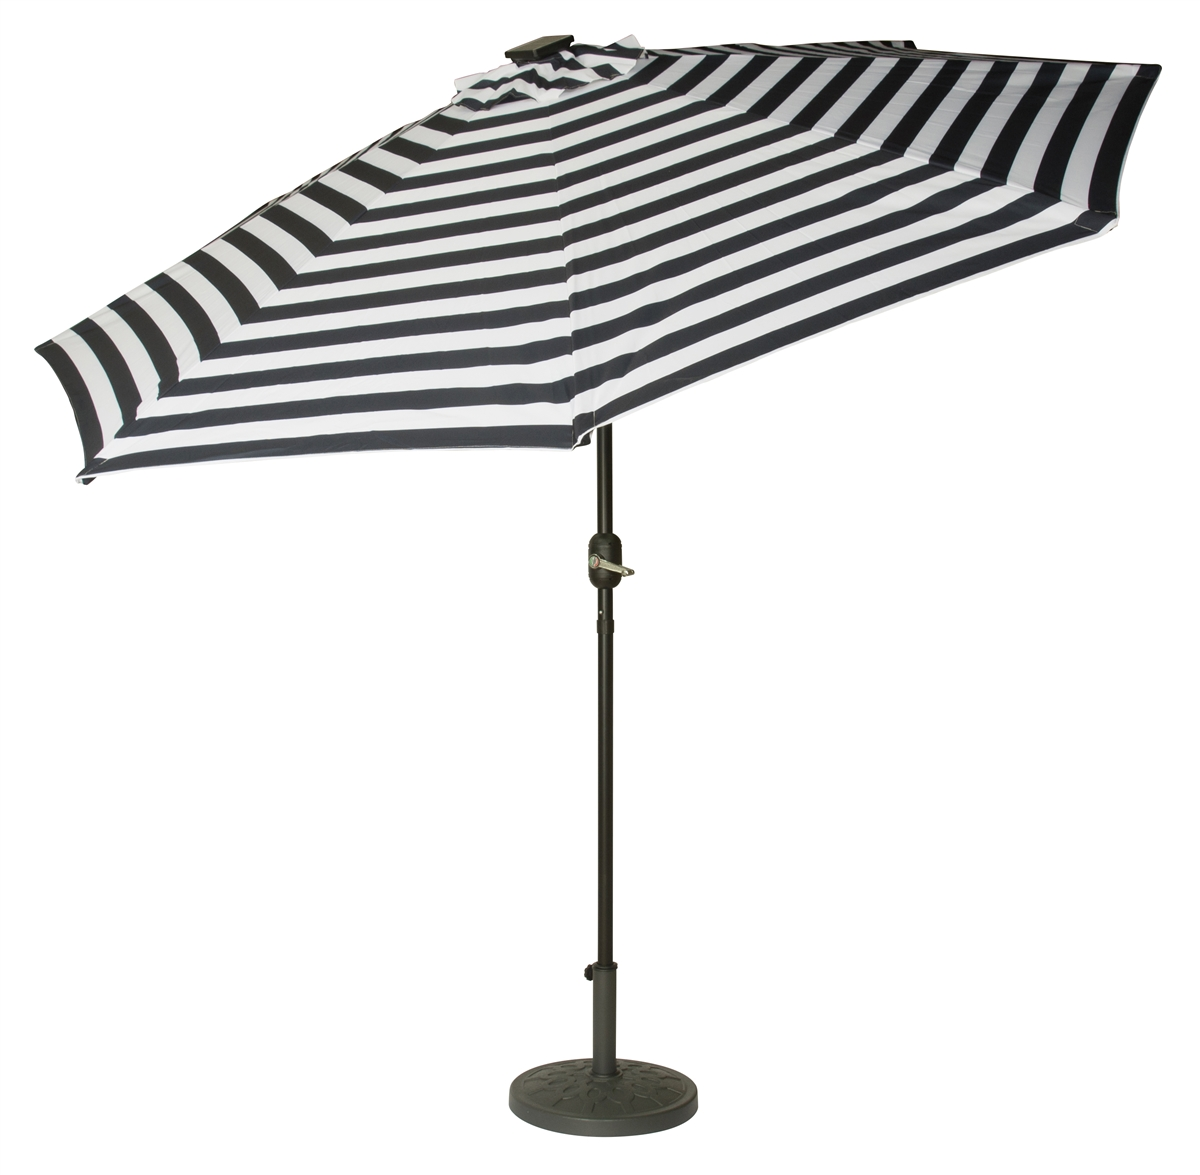 9 Deluxe Solar Ed Led Lighted Patio Umbrella By Trademark Innovations Blue Striped